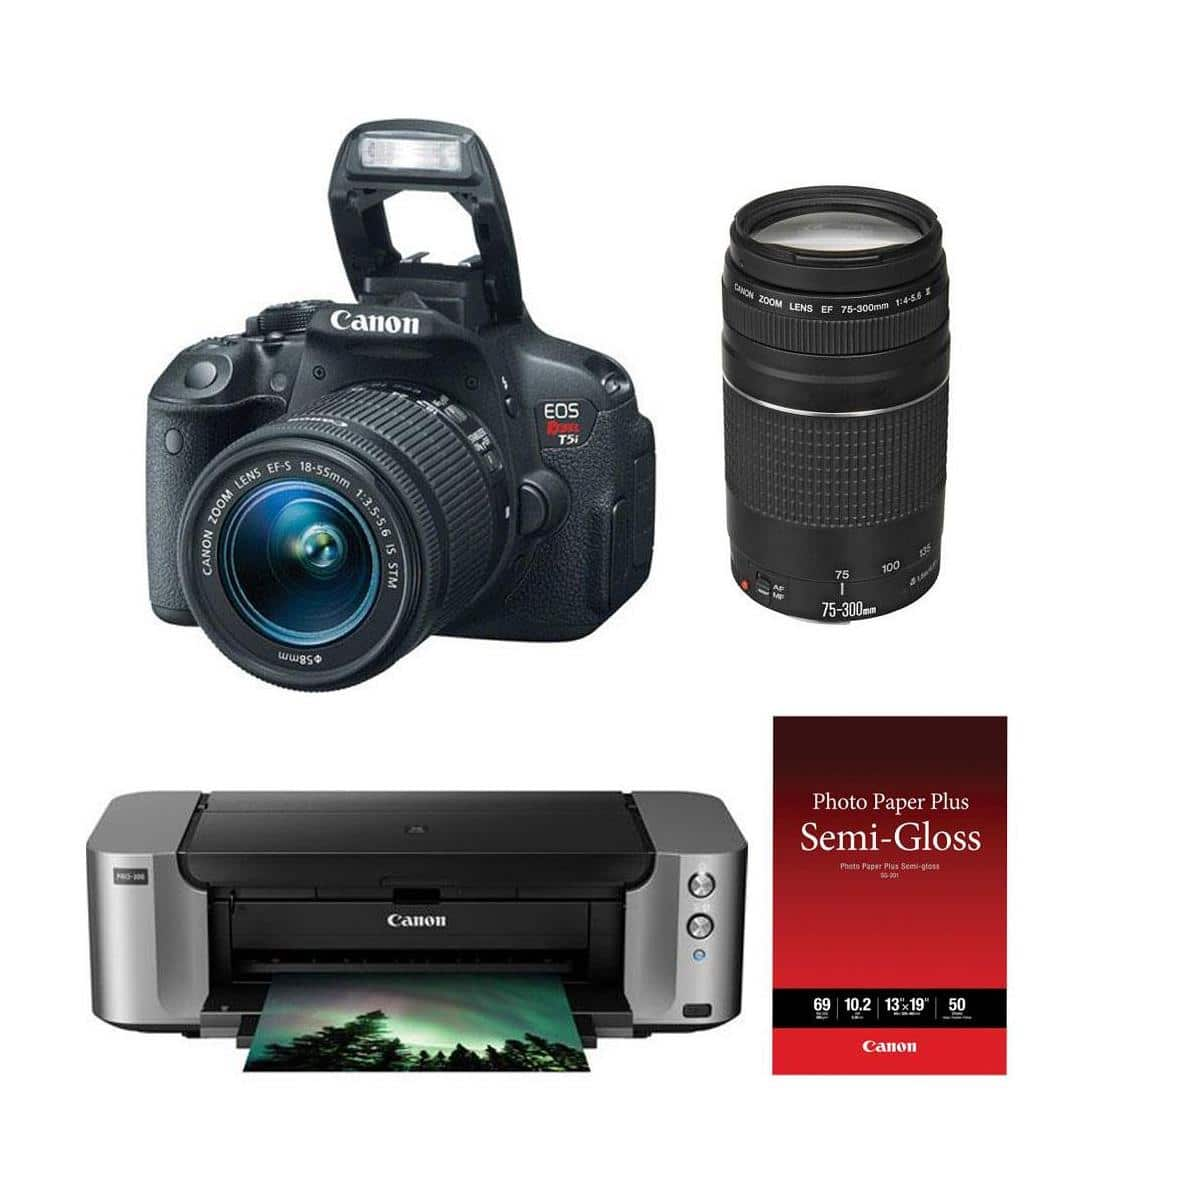 Canon T5i DSLR Camera + 18-55mm STM Lens + 75-300mm lens  + Pro-100 Printer $449 + free shipping after $350 Rebate